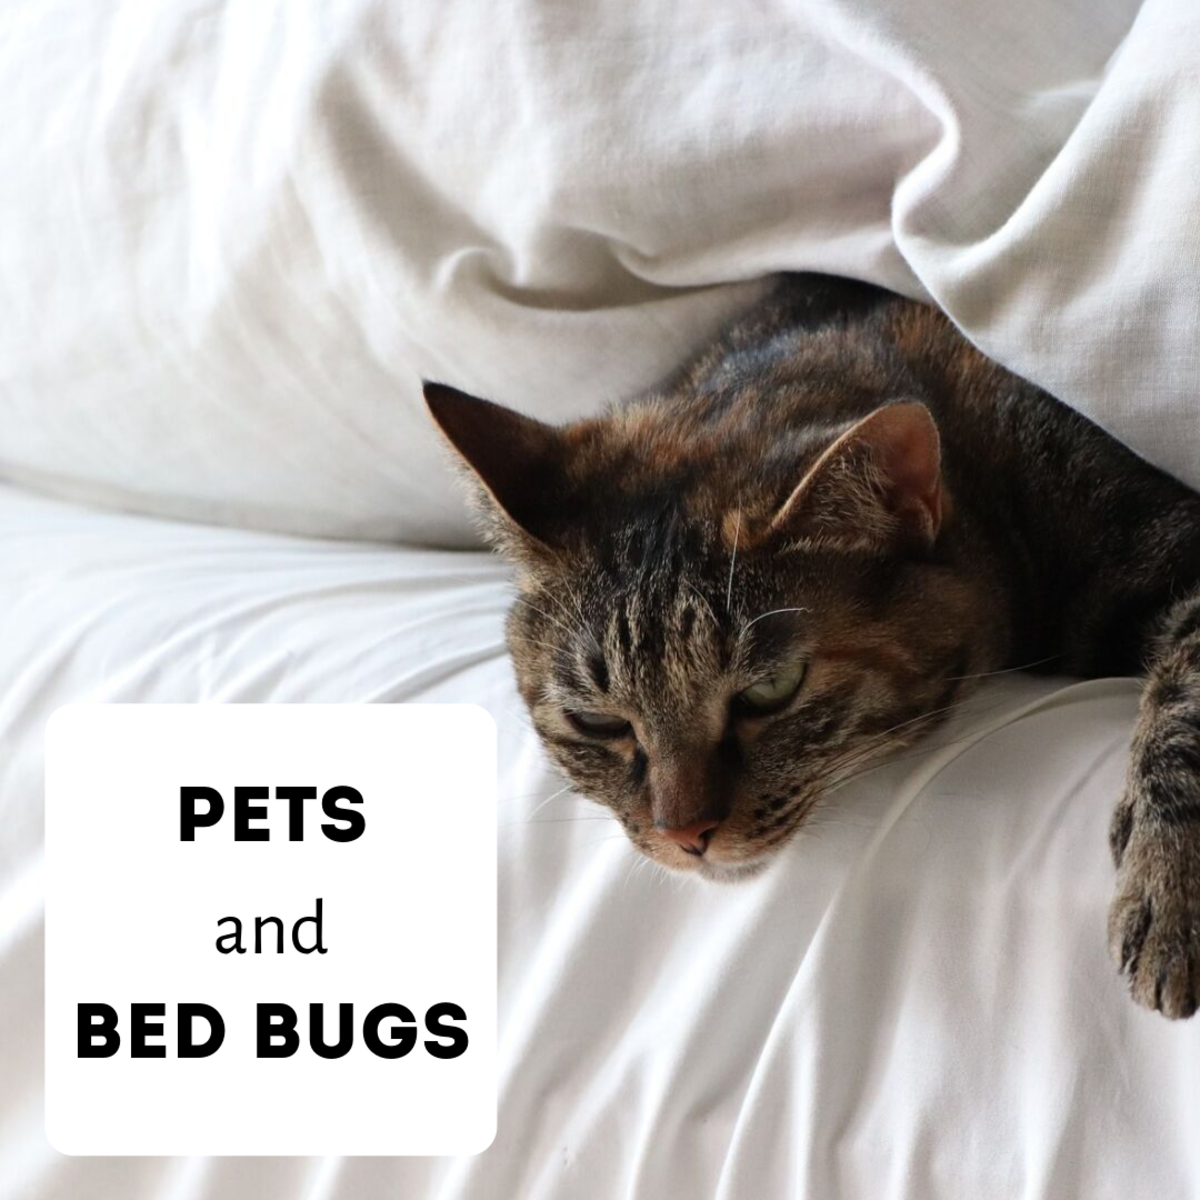 Do Cats, Dogs, and Pets Carry Bed Bugs?